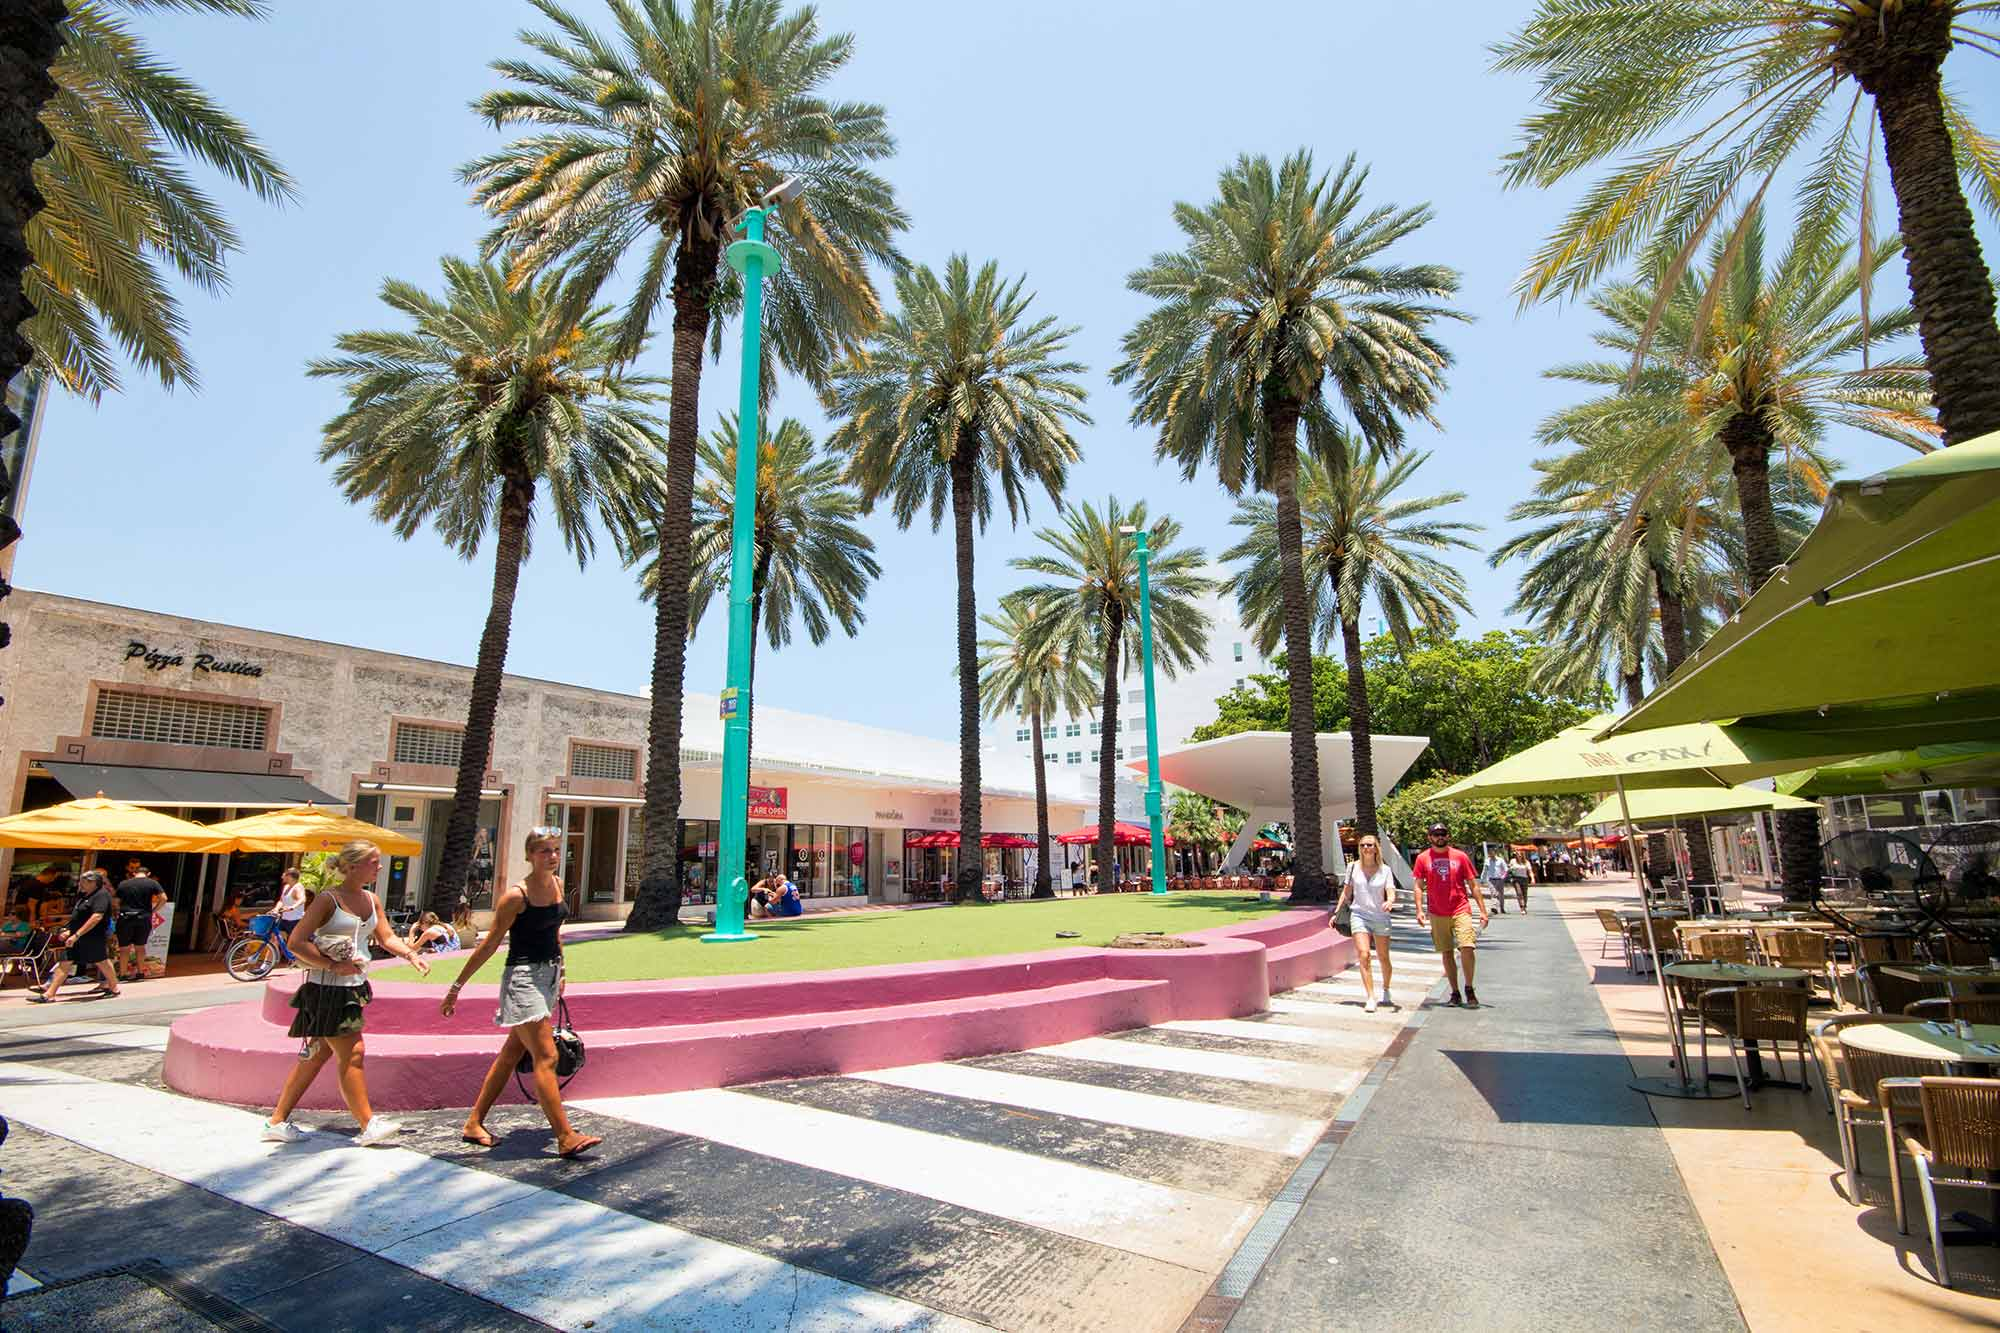 Located just a few blocks off the beach, Lincoln Road Mall is South Florida's premier outdoor shopping, dining, and entertainment destination. This mile long, pedestrian-only promenade boasts a happening street scene with throngs of local and out-of-town visitors, excellent shopping, and terrific dining options.